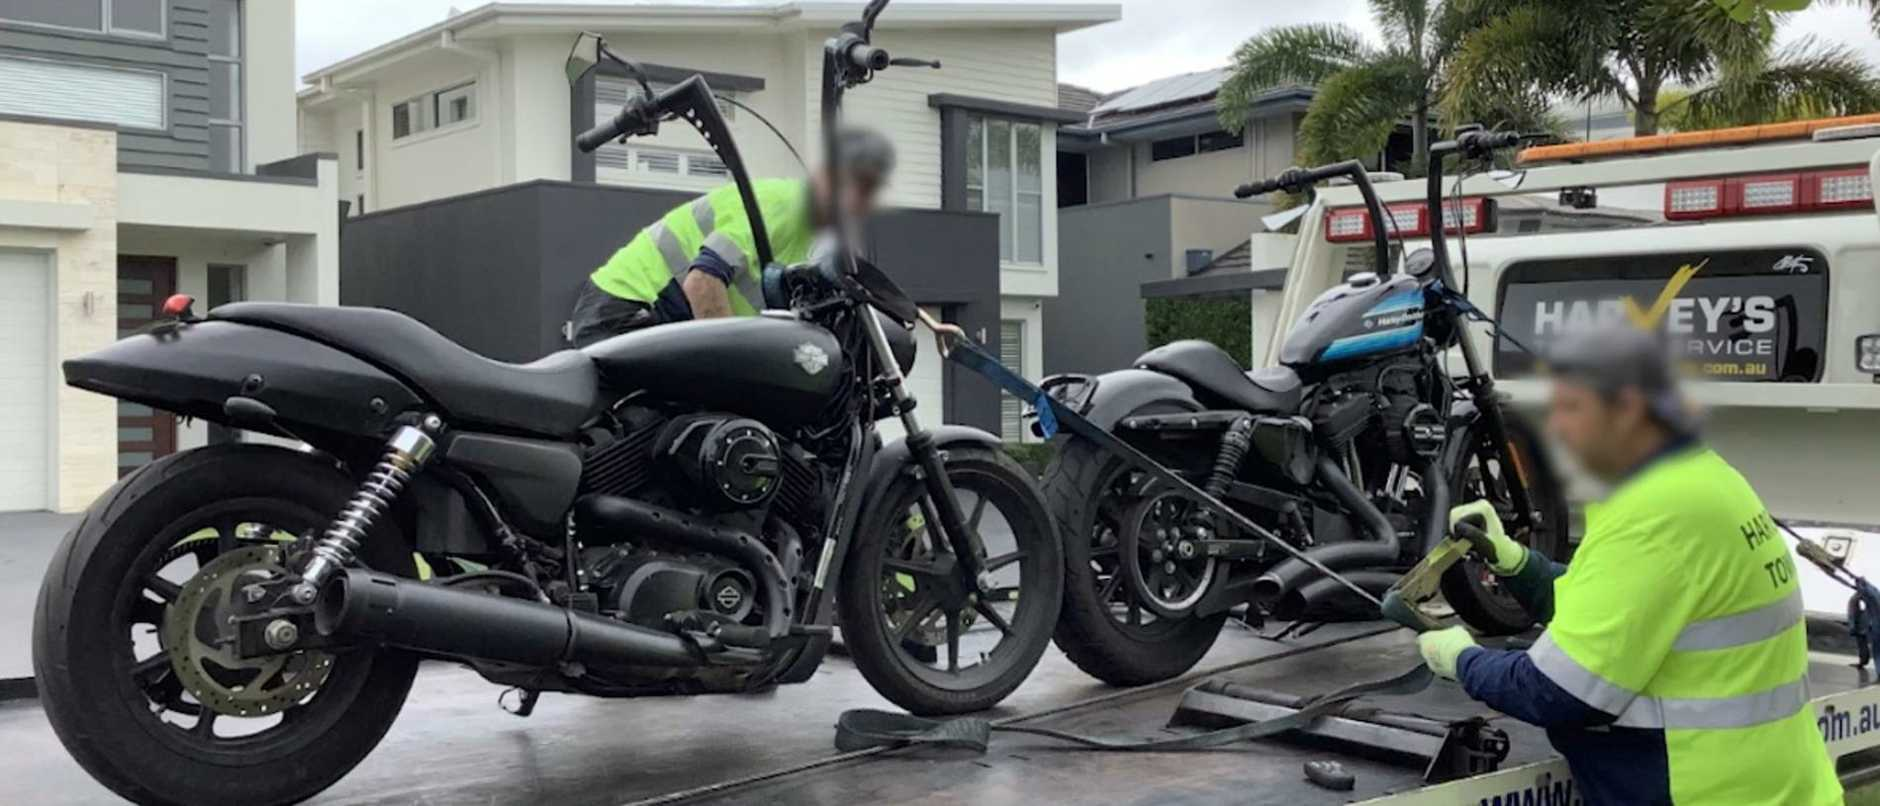 The president of a major bikie club has been arrested after a series of raids targeting Outlaw Motorcycle Groups.